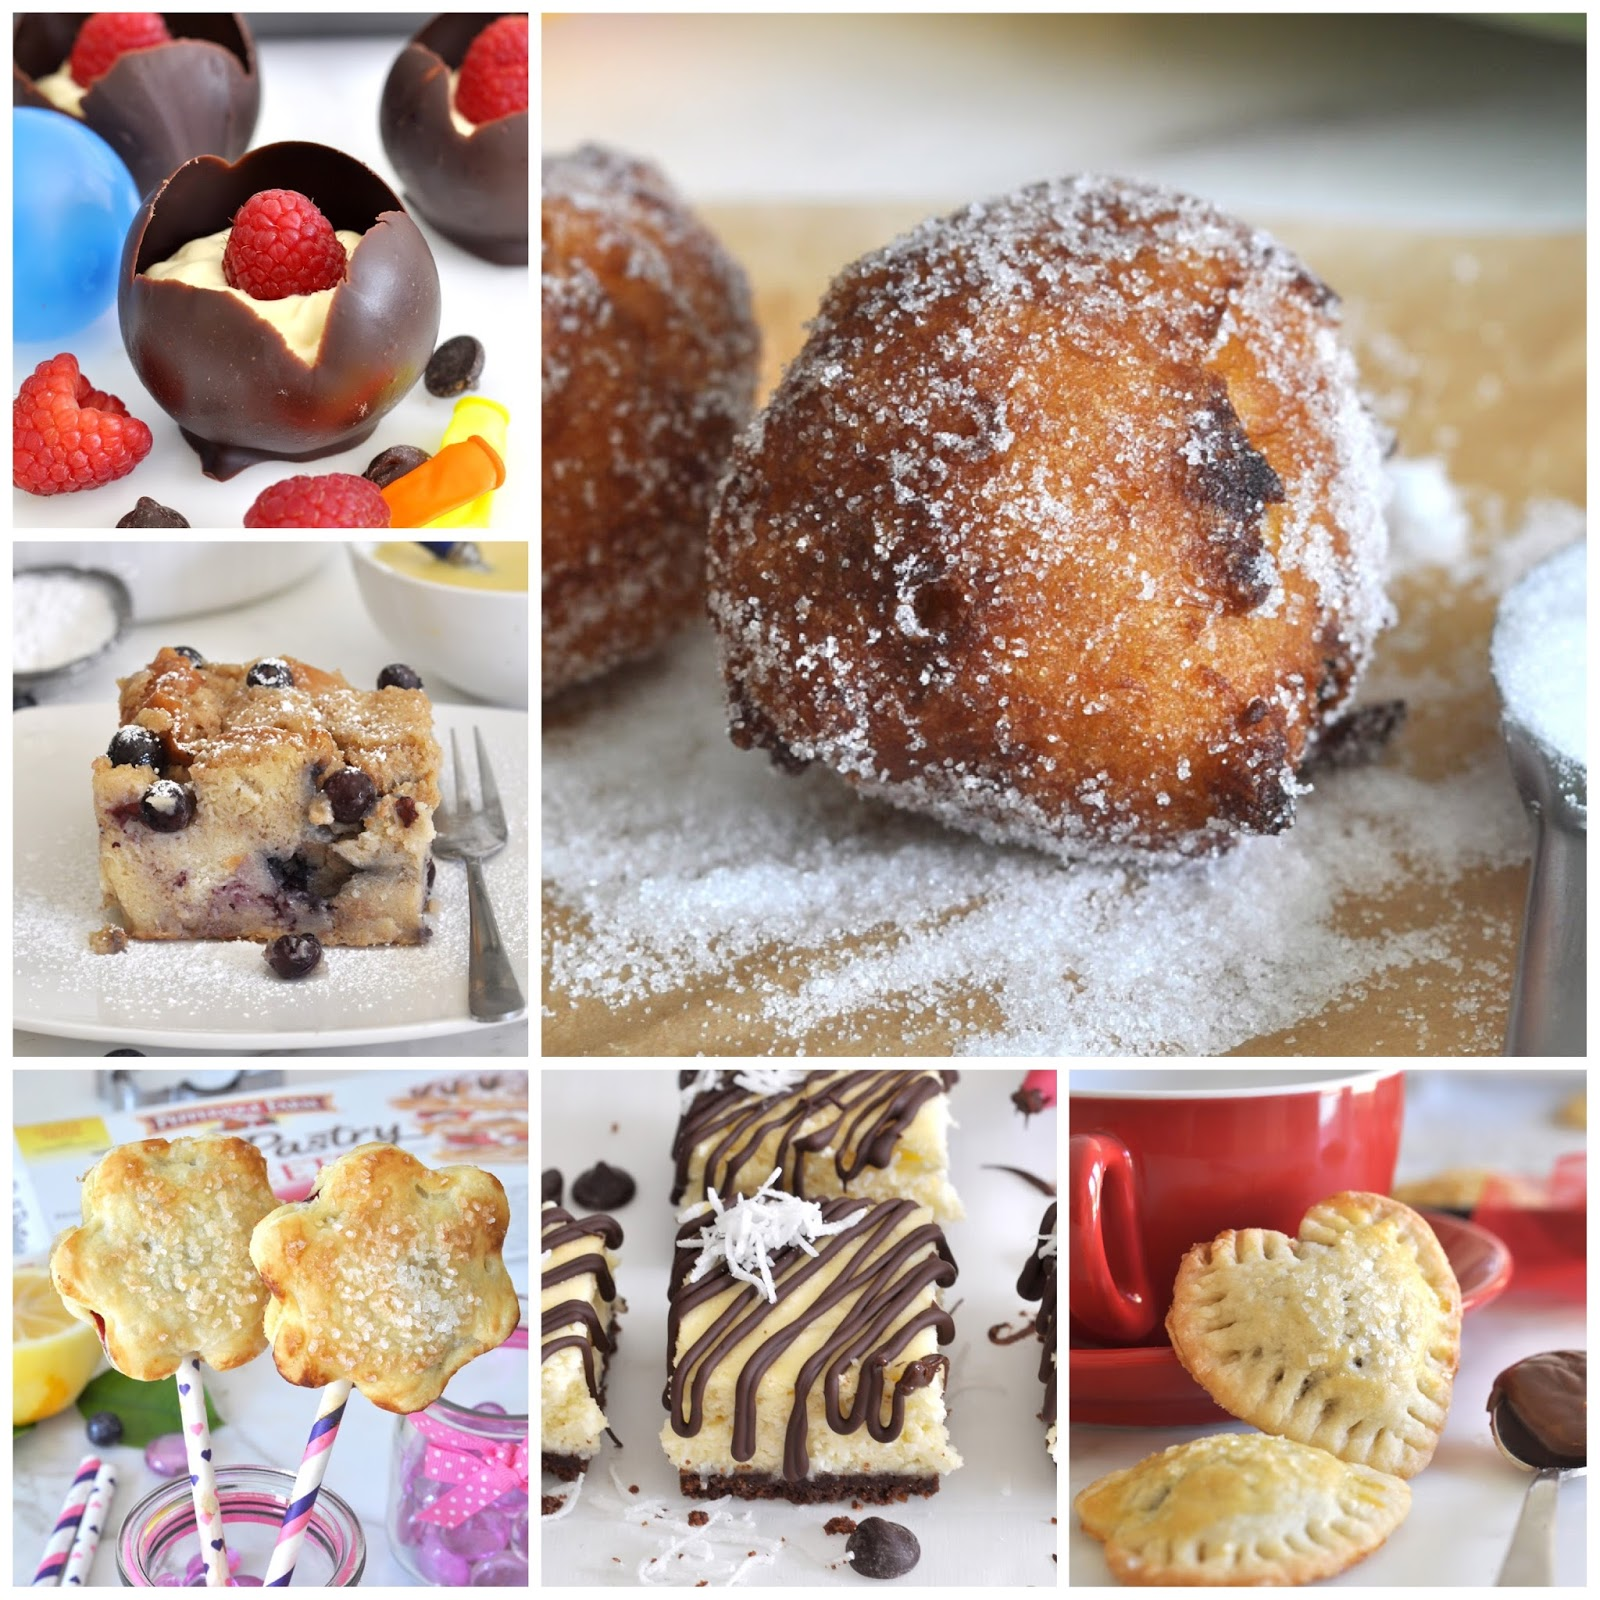 Cooking with Manuela: 2017 Most Popular Desserts